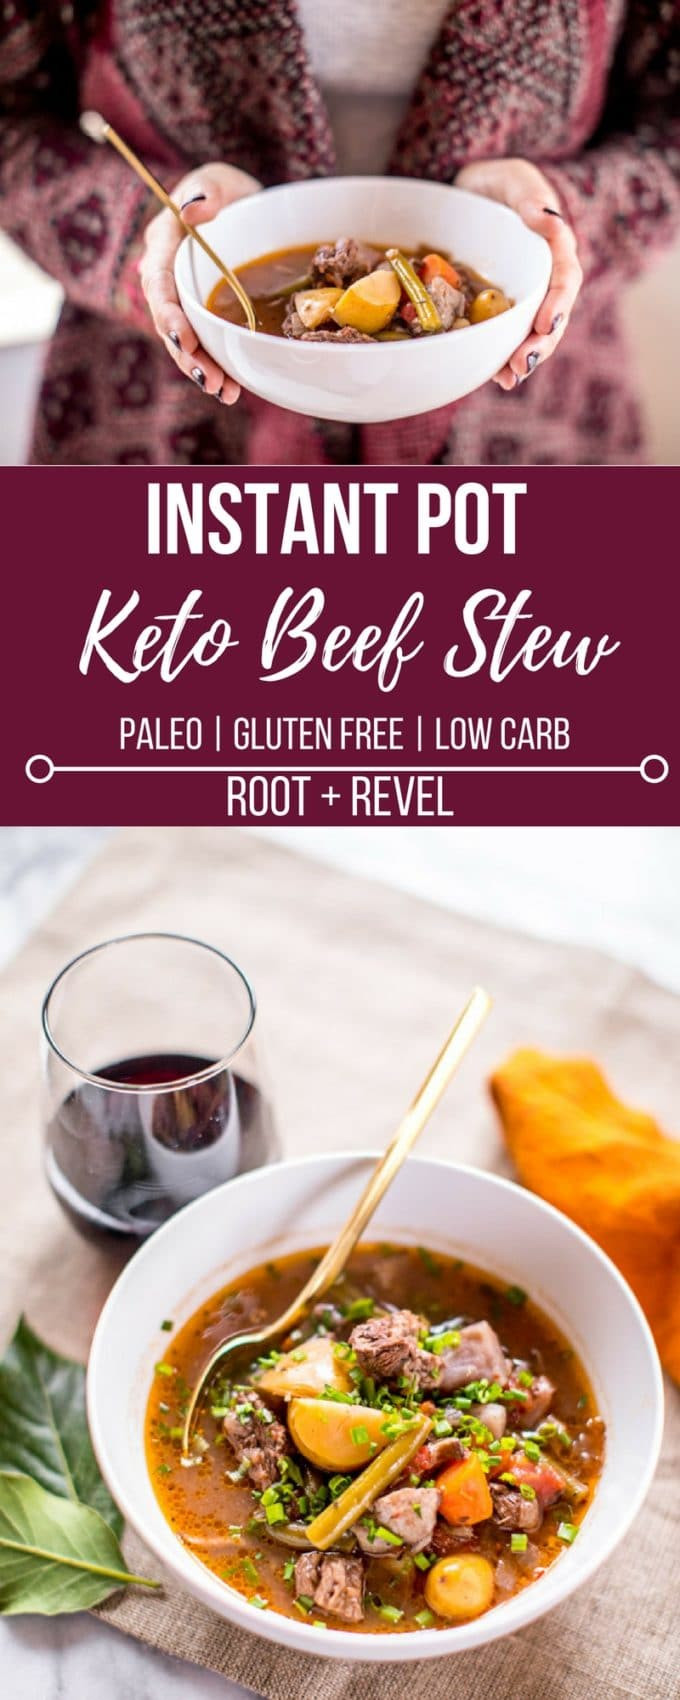 Instant Pot Keto Recipes  Keto Beef Stew in the Instant Pot or Slow Cooker